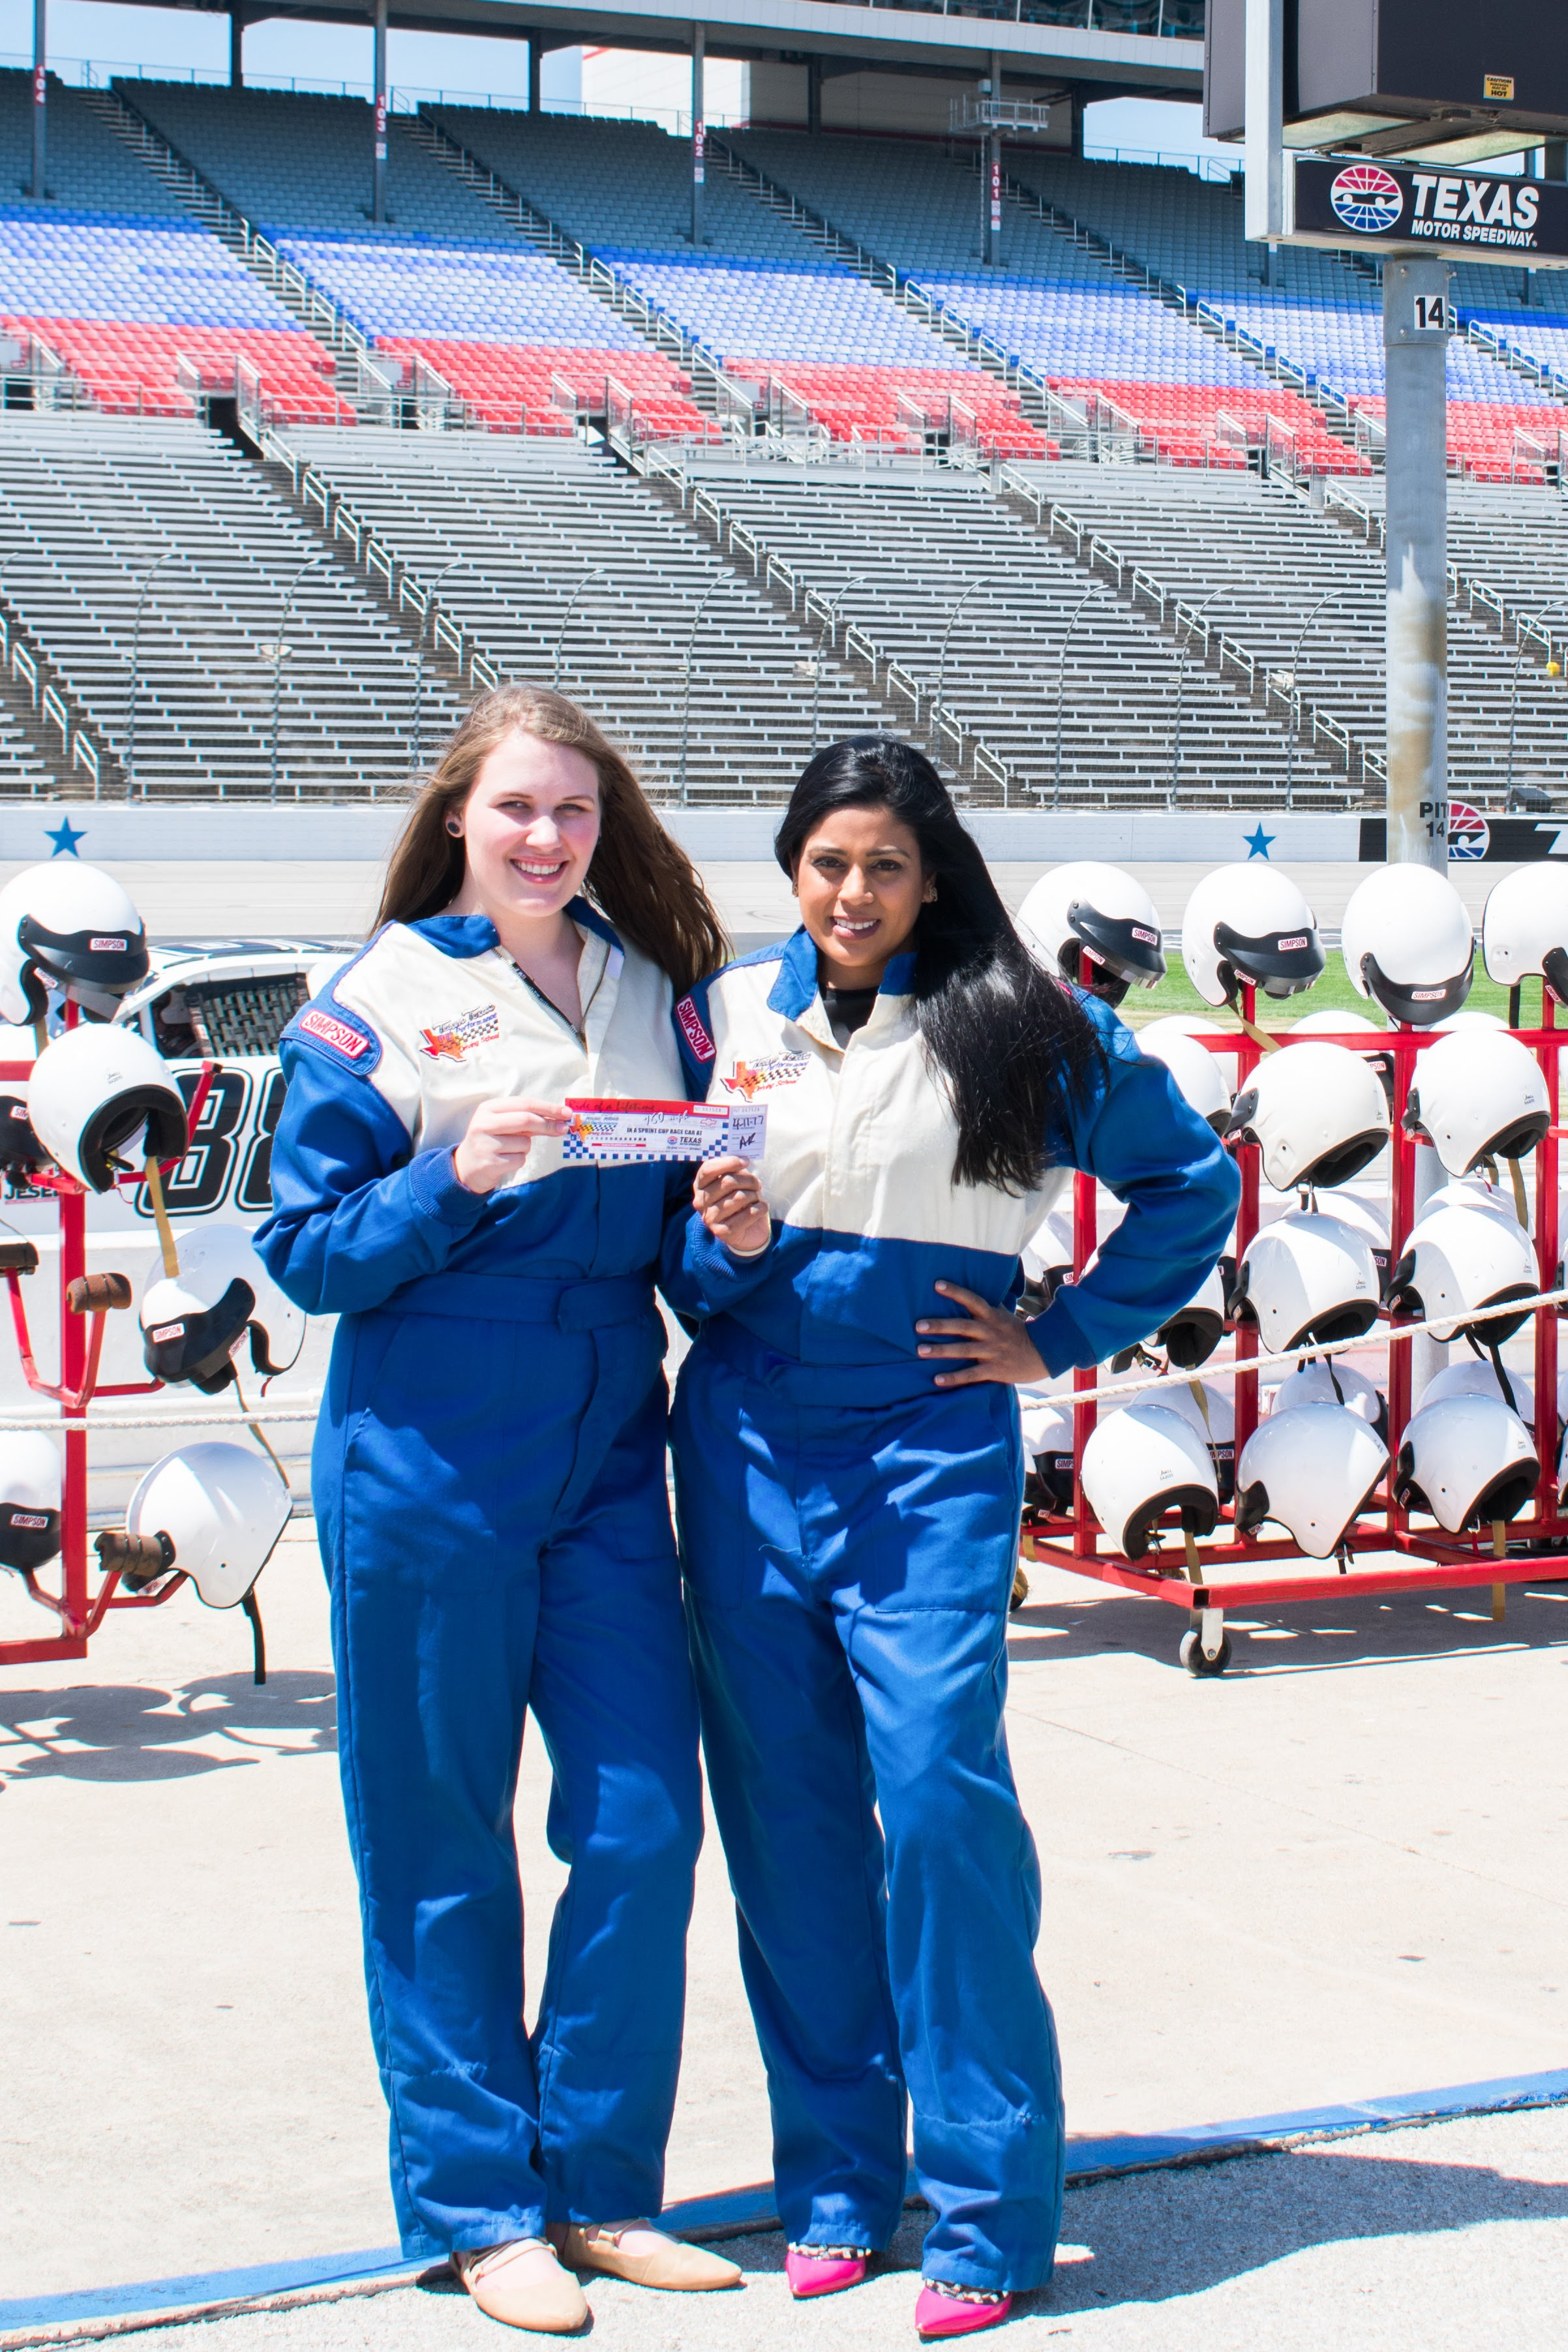 Make Your Life Sweeter Events - Yasmeen Tadia at Texas Motor Speedway